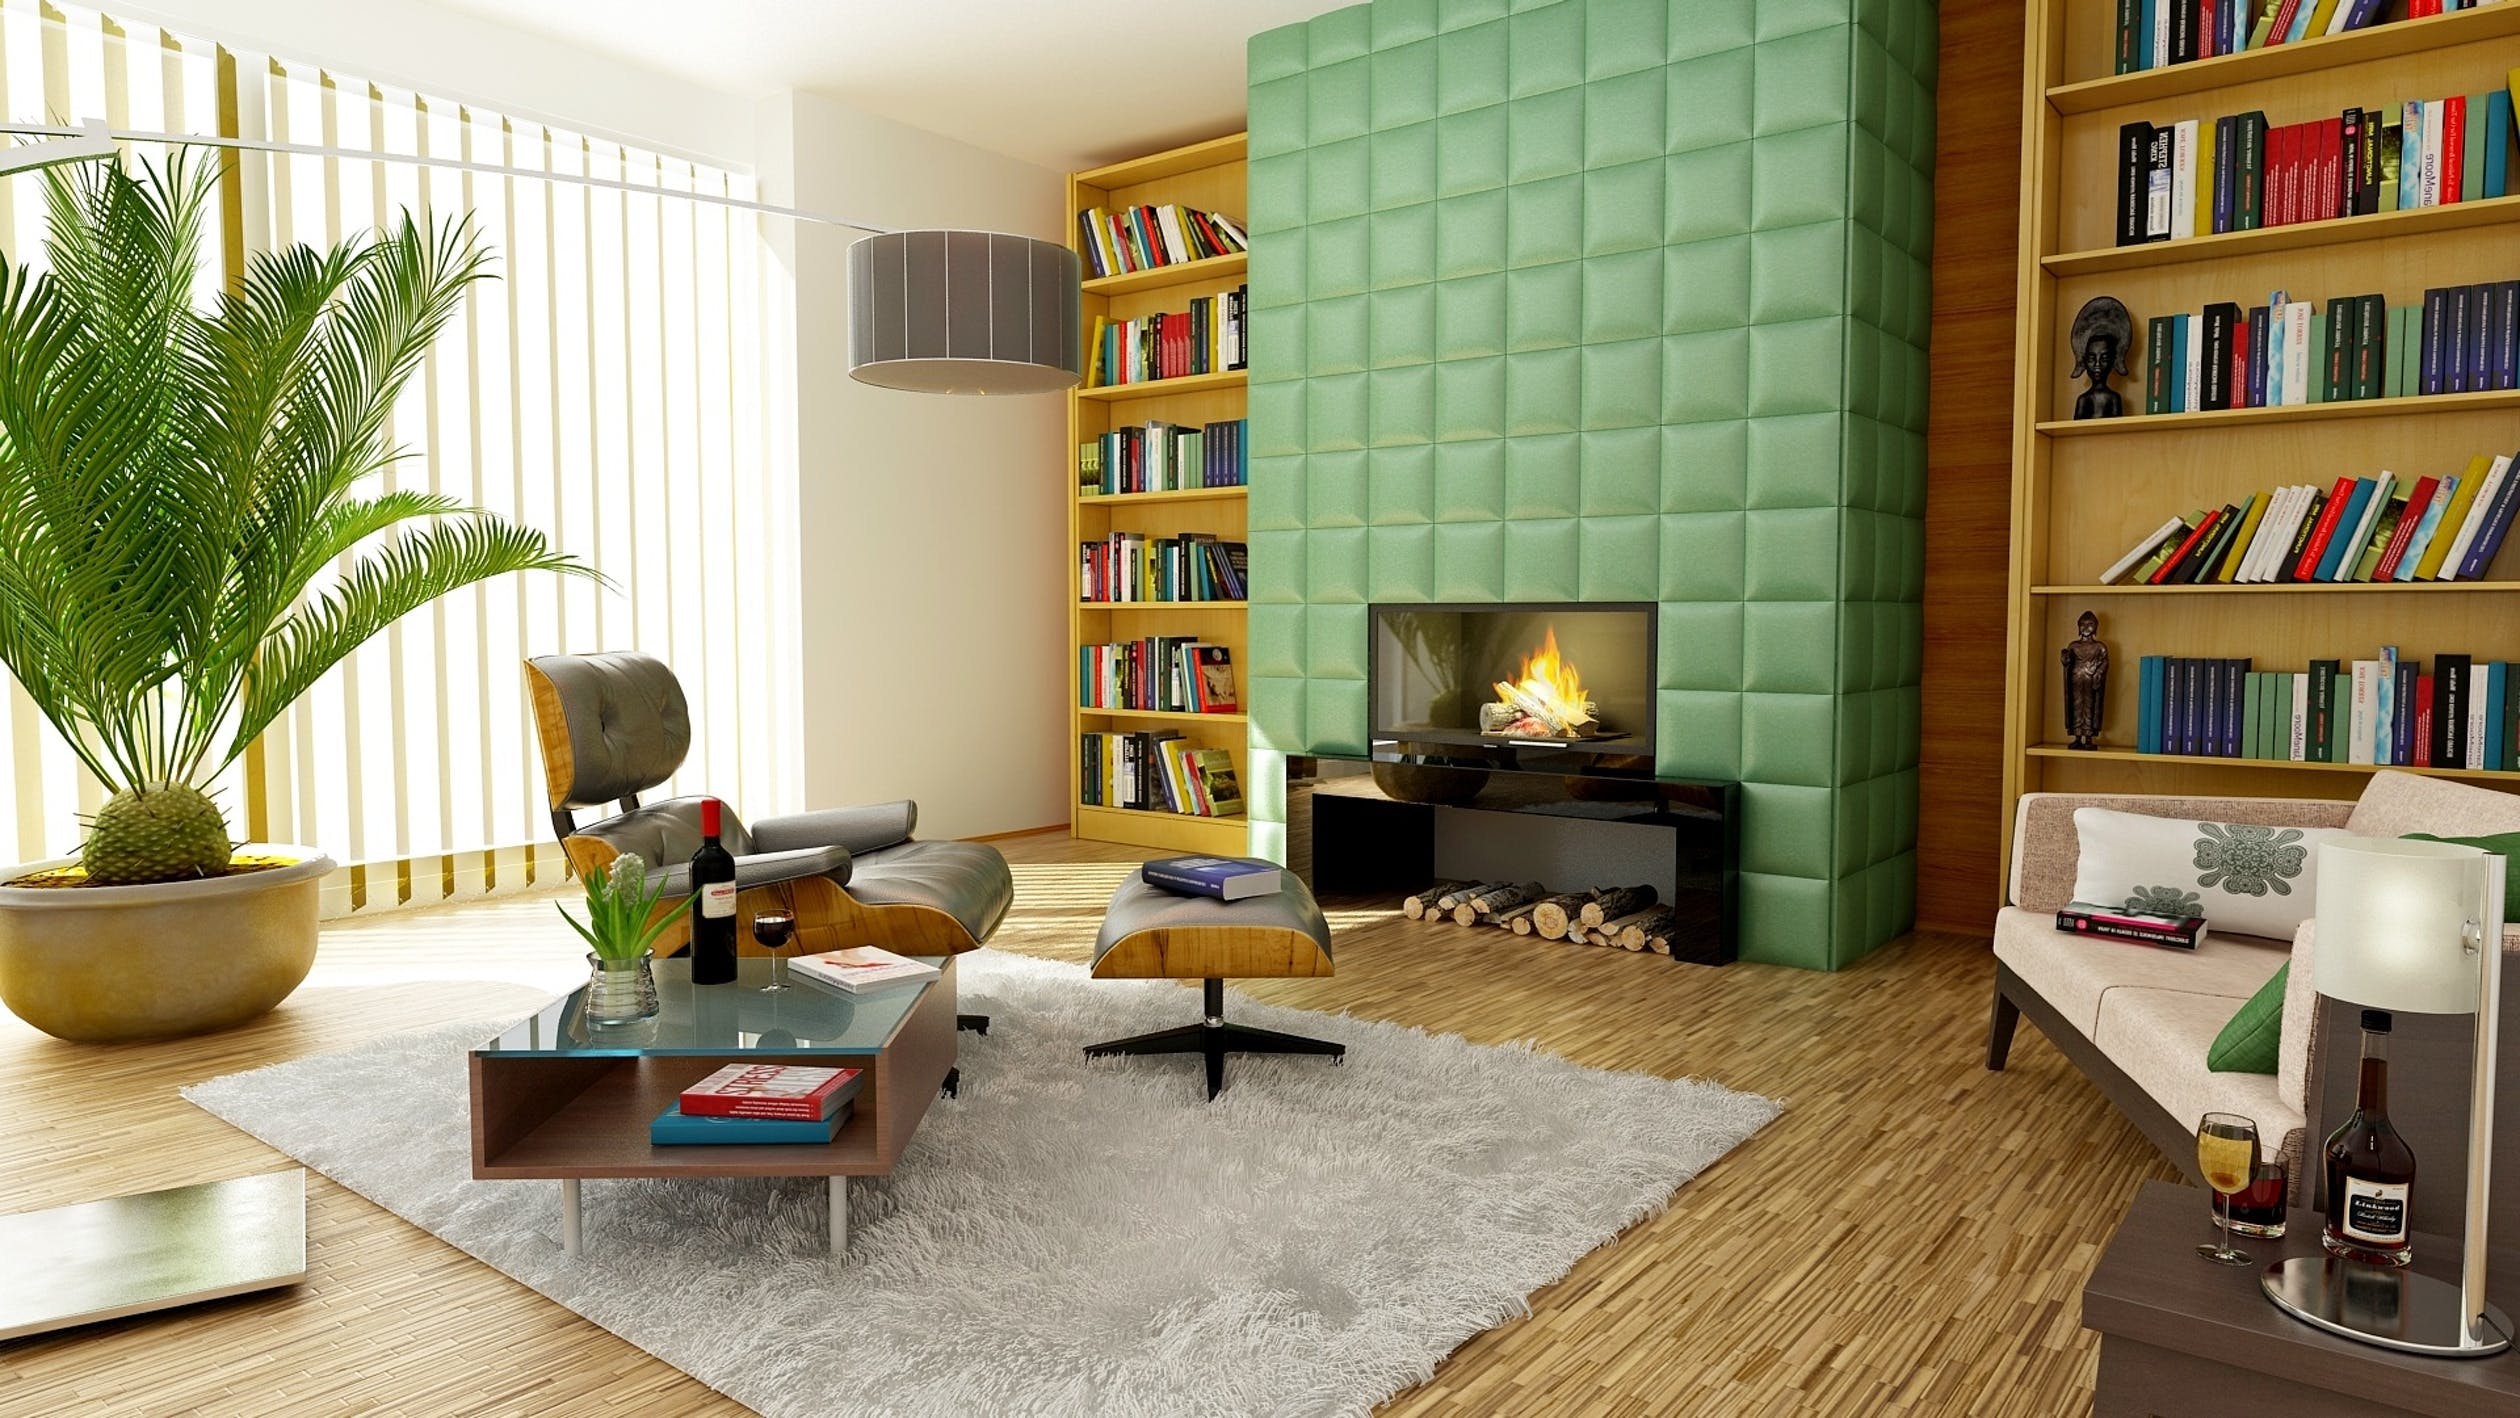 living room with fire place and colorful books